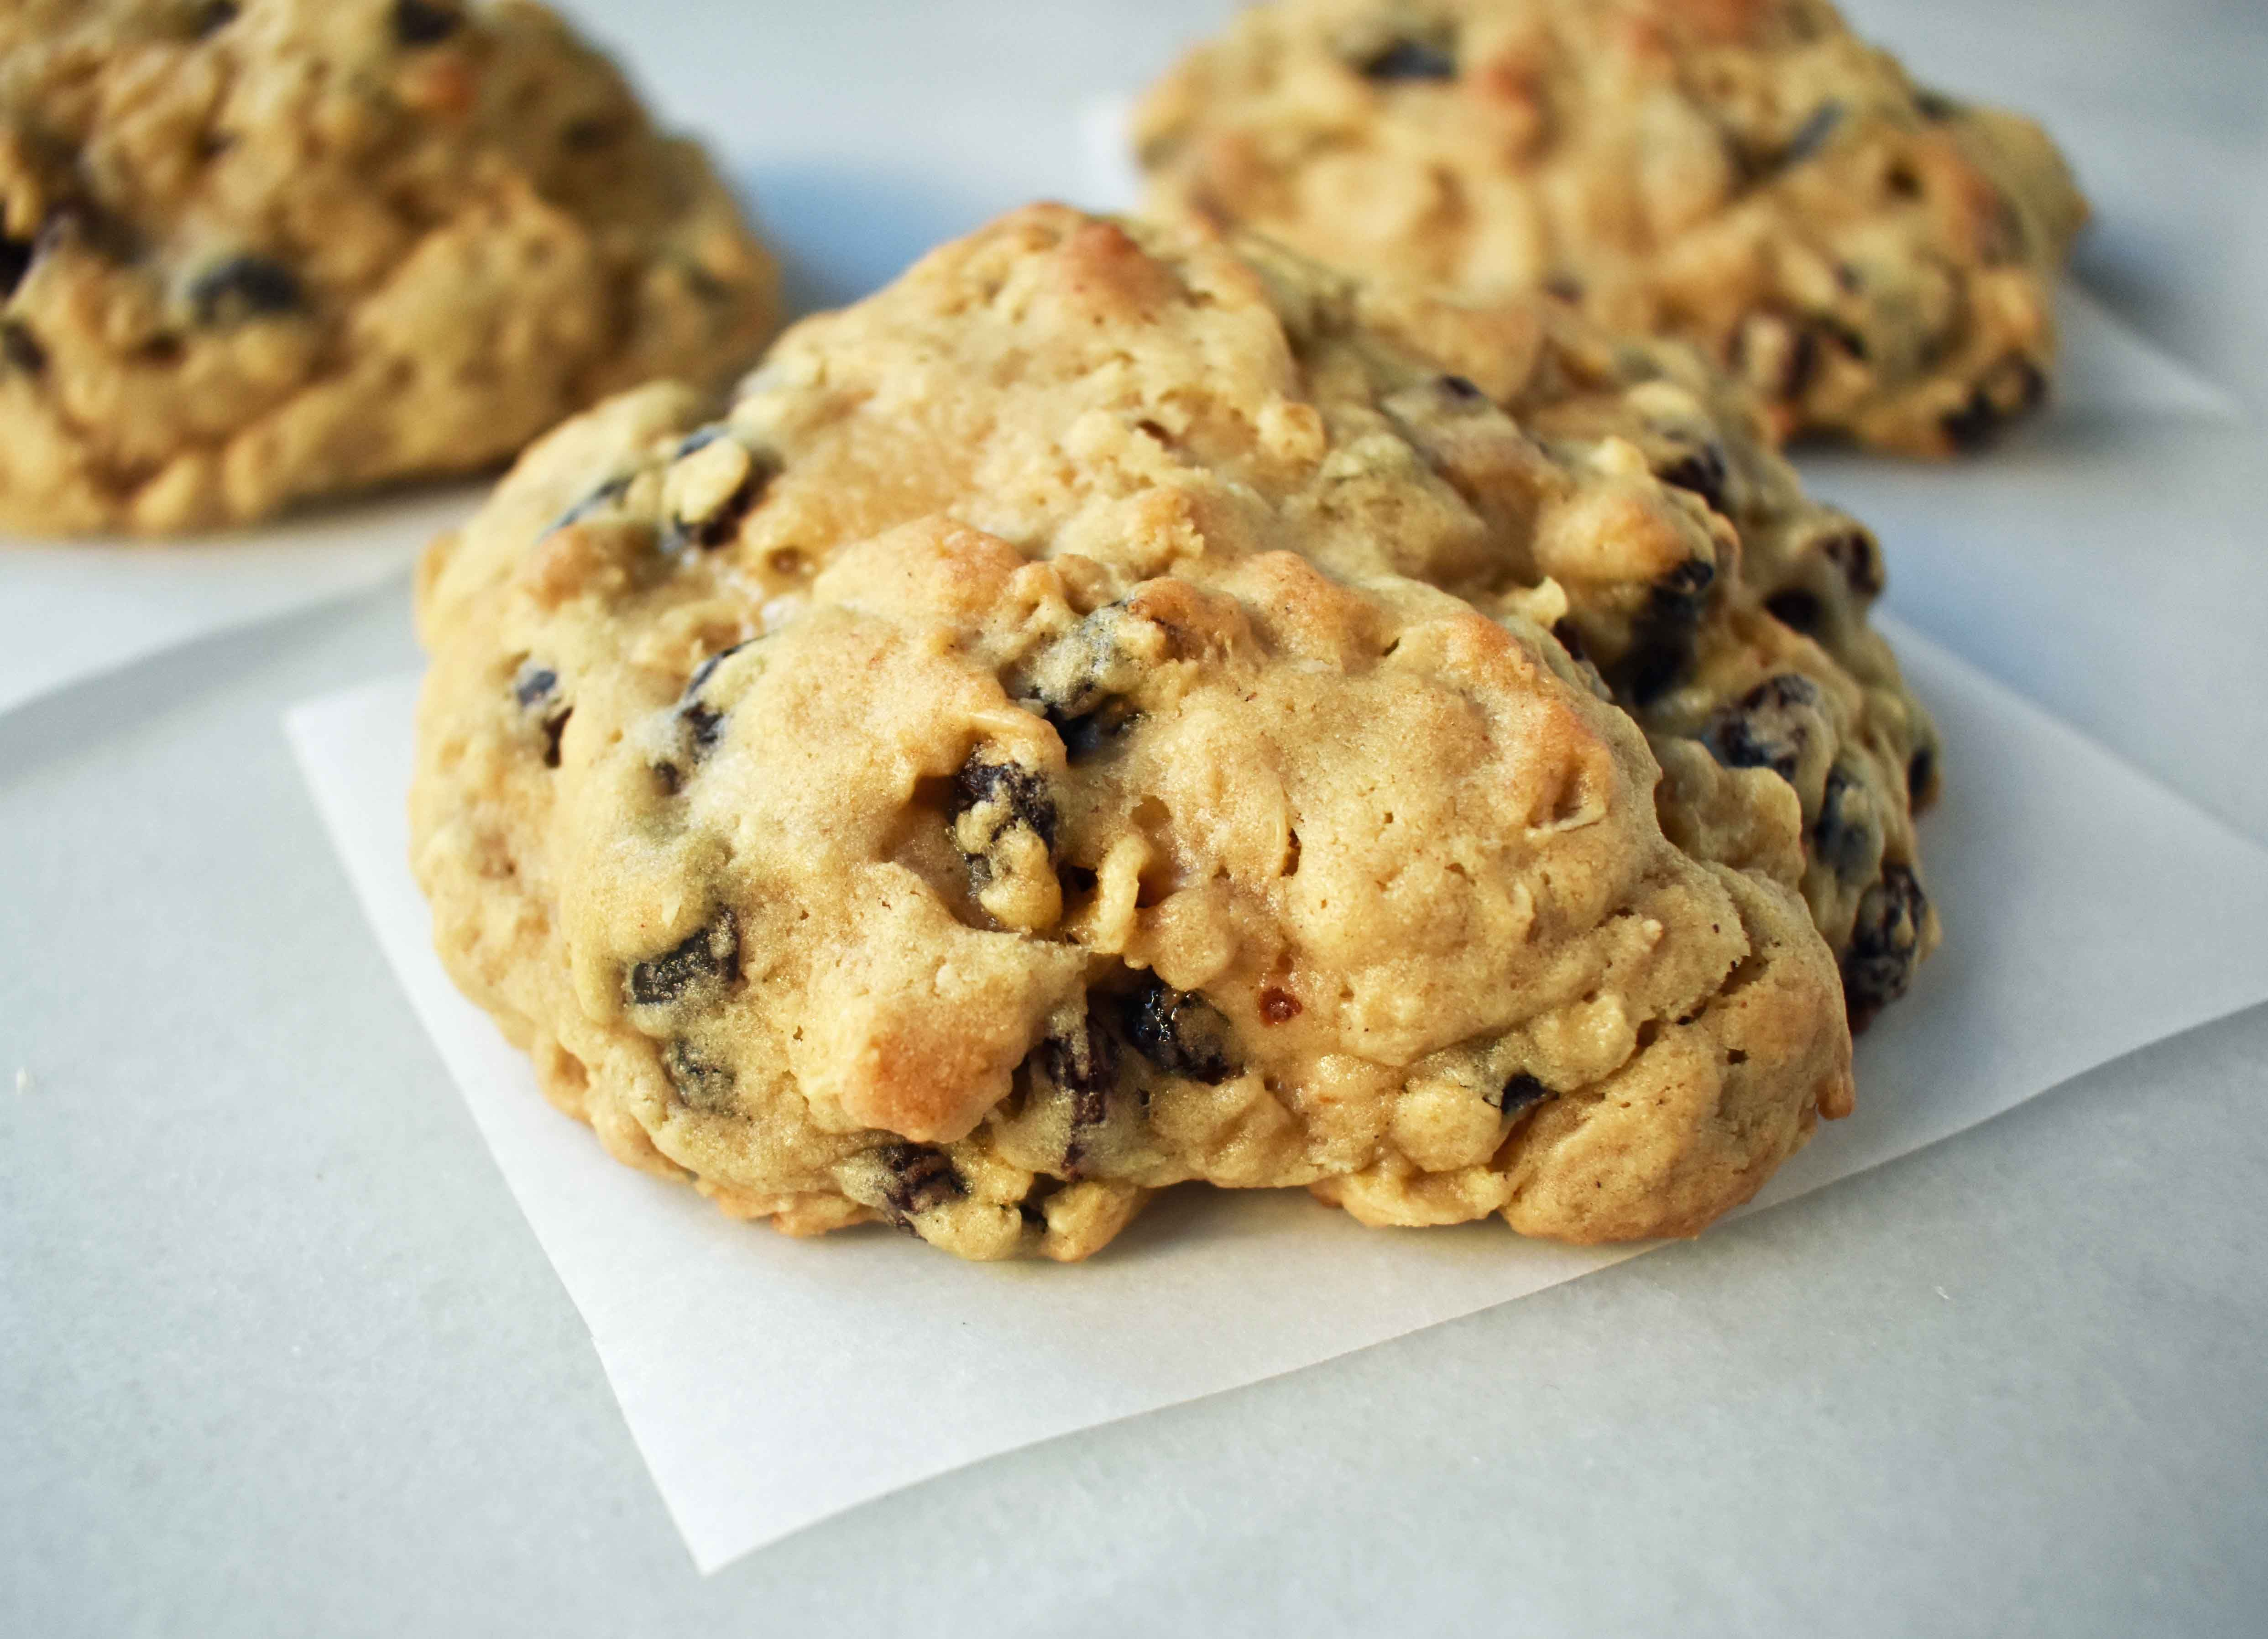 The Original Levain Bakery Oatmeal Raisin Cookie Recipe 5 Star Rating For A Reason The Best